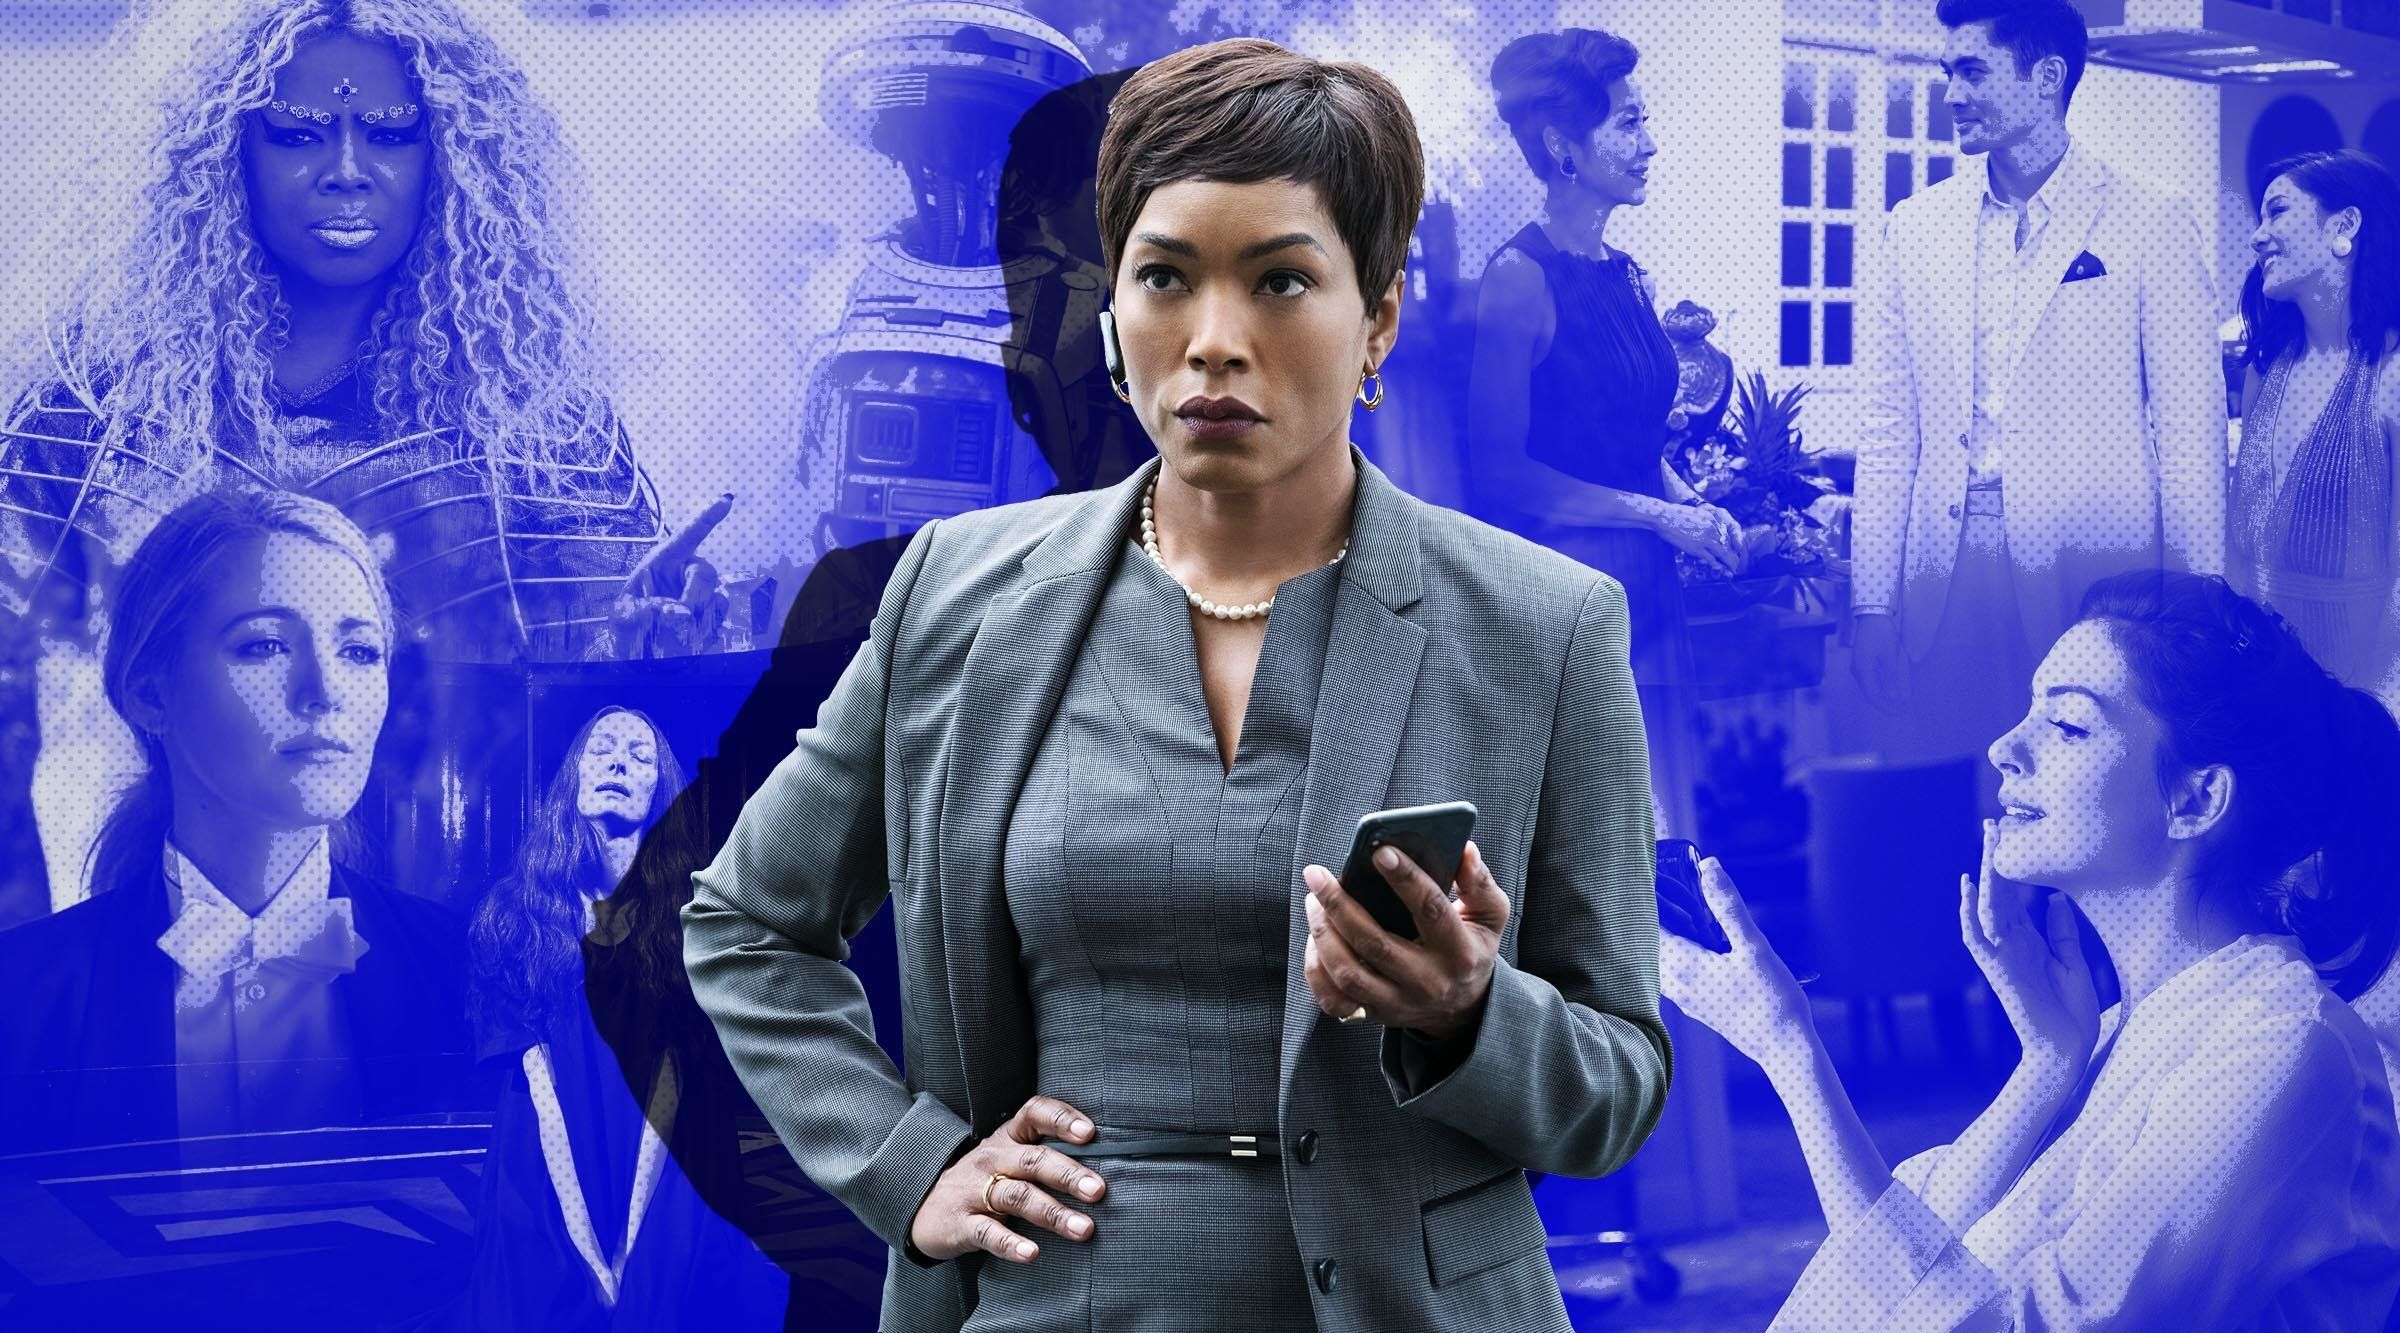 Angela Bassett as Erika Sloane in MISSION: IMPOSSIBLE - FALLOUT, from Paramount Pictures and Skydance.